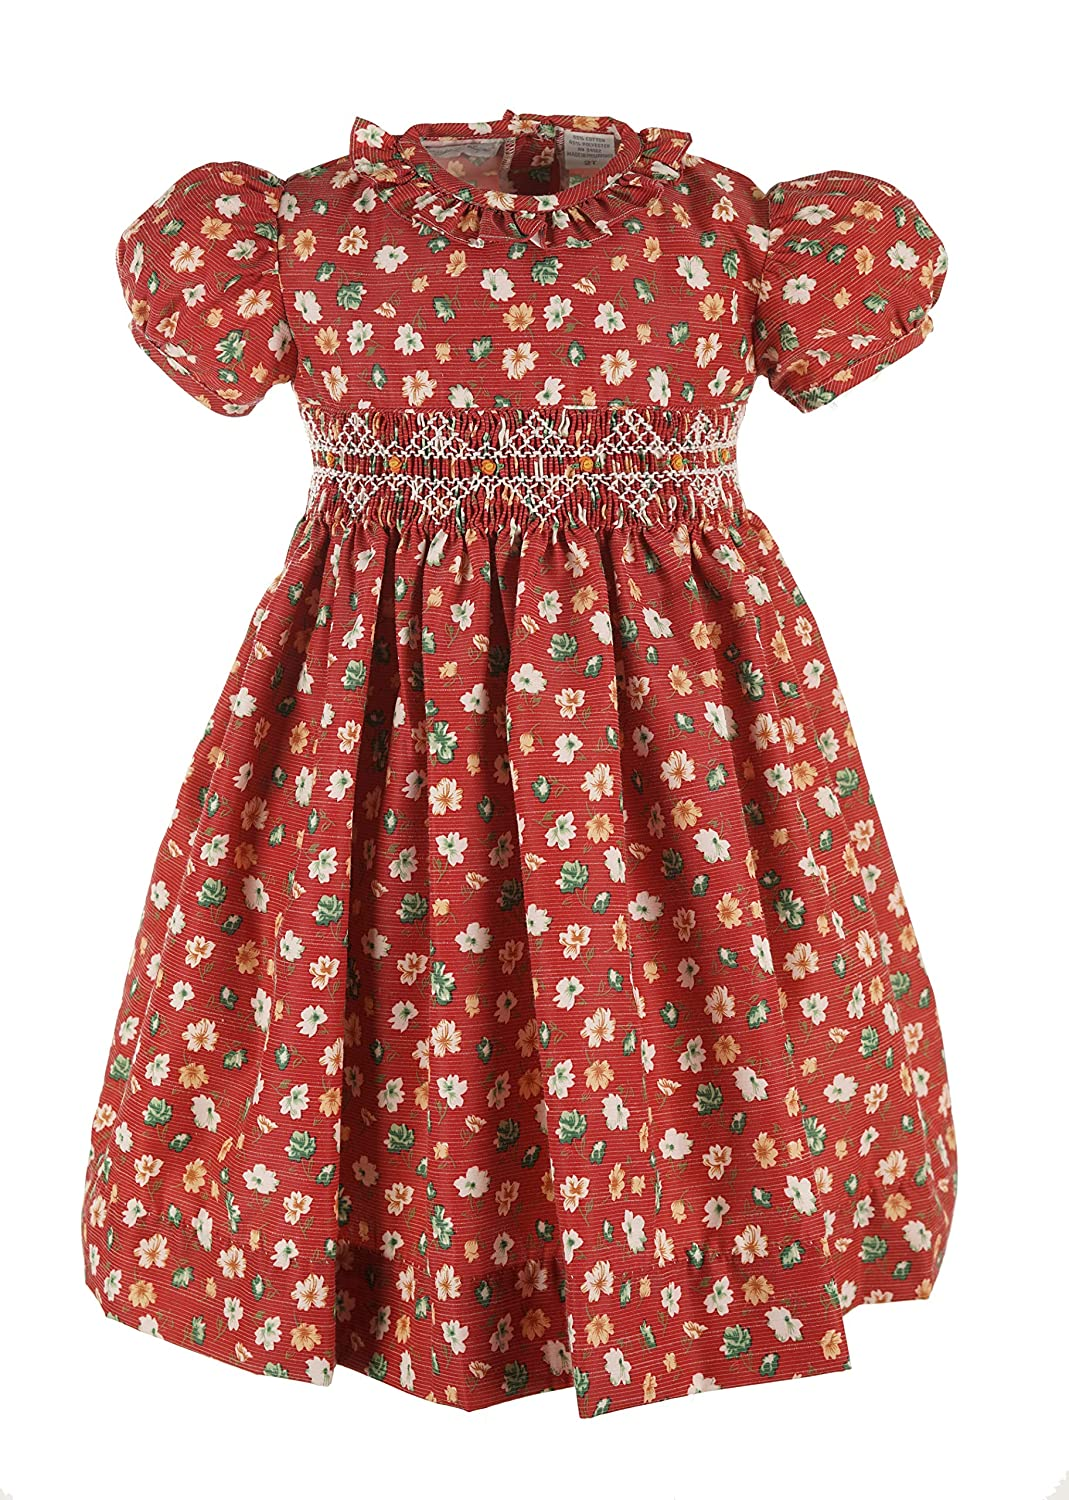 1940s Children's Clothing: Girls, Boys, Baby, Toddler Carriage Boutique Girls Red Waisted Yoke Dress - Floral Winter Short Sleeve $56.00 AT vintagedancer.com